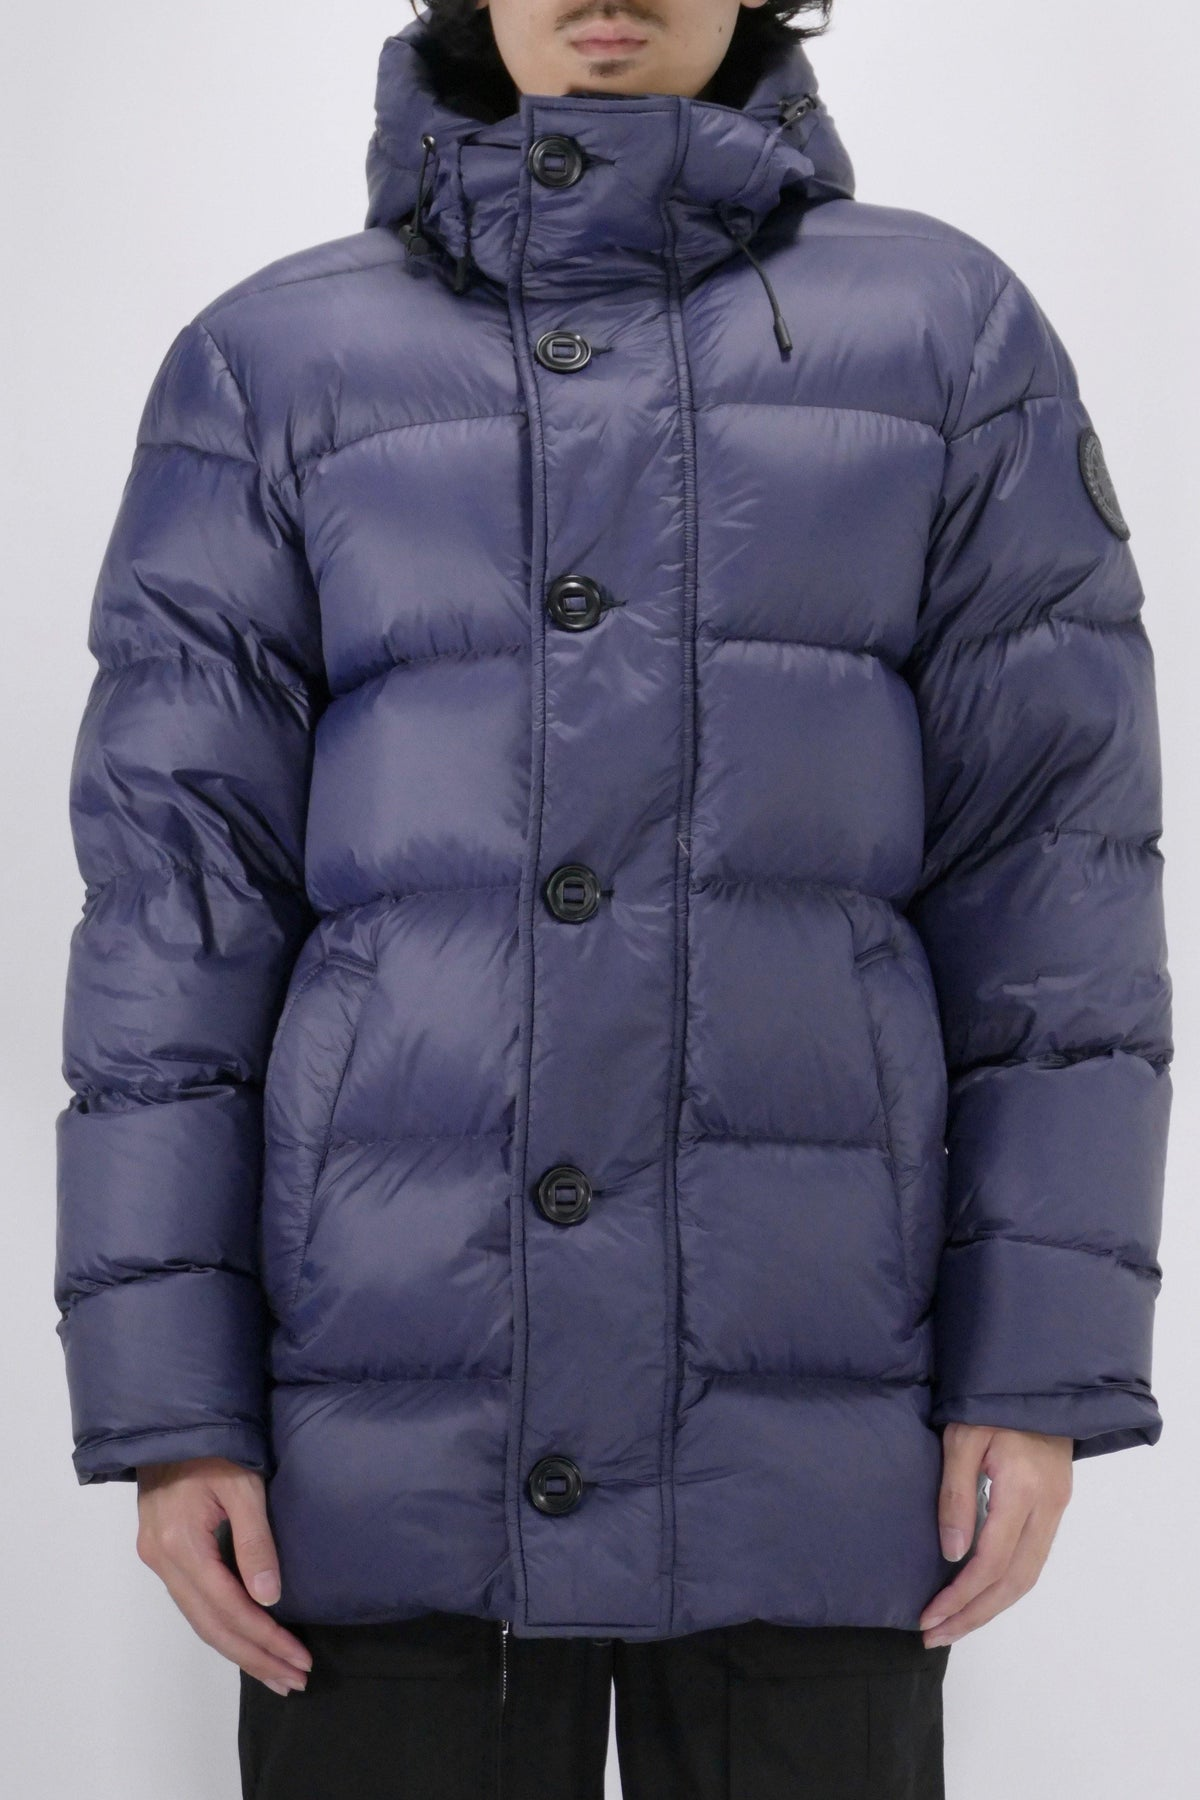 Canada Goose Mens Parka Vernon Black Label - Navy